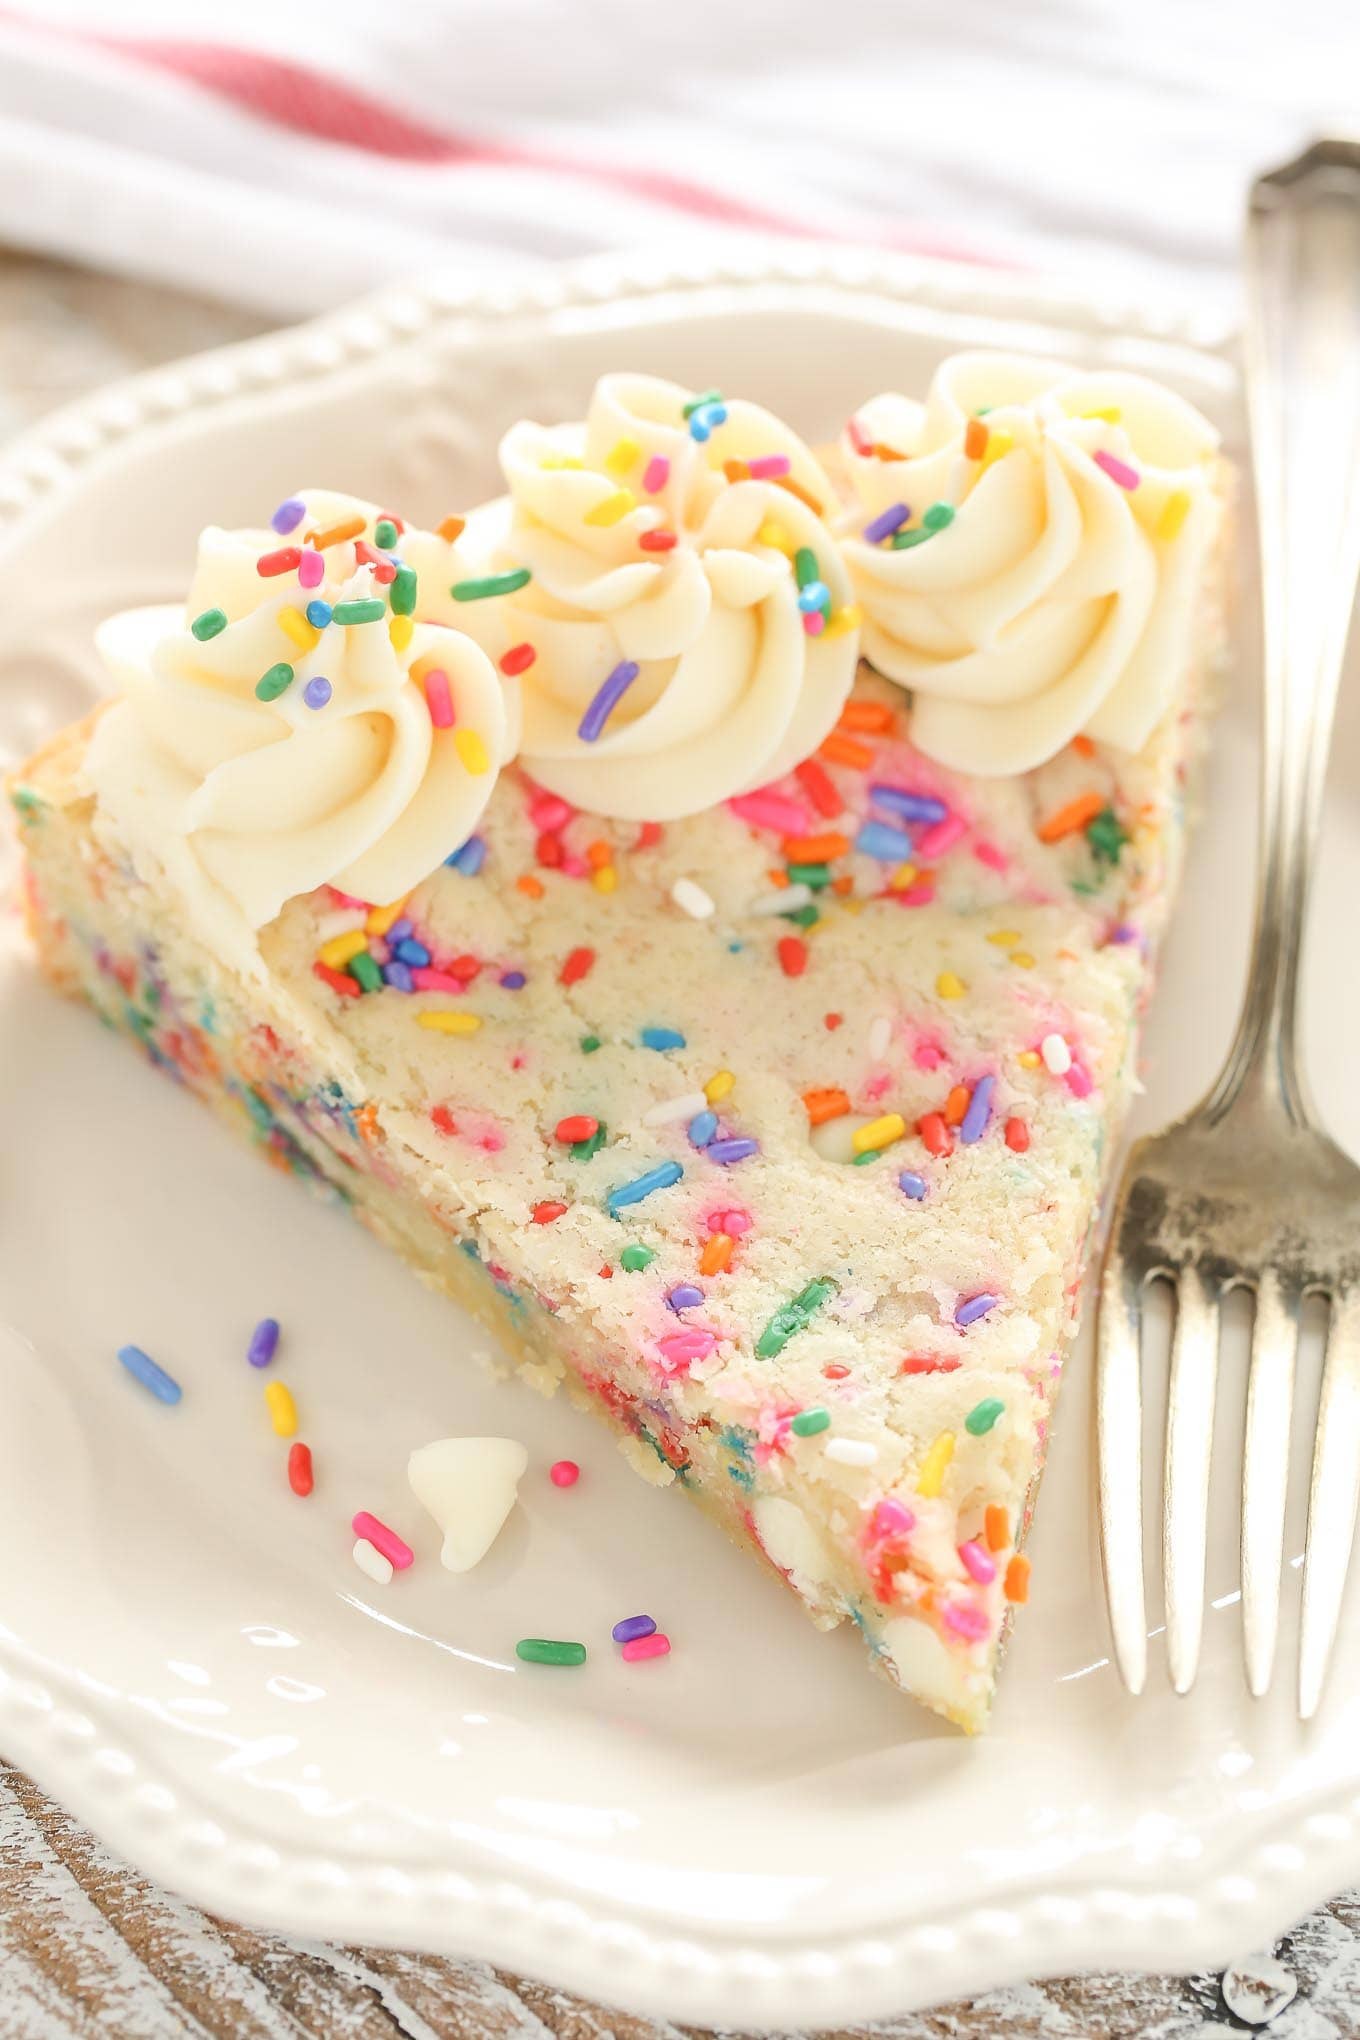 A sugar cookie cake withsprinkles, whitechocolate chips, and topped with a homemade vanilla frosting. This Funfetti Sugar Cookie Cake is easy to make and aperfect dessert for any occasion!